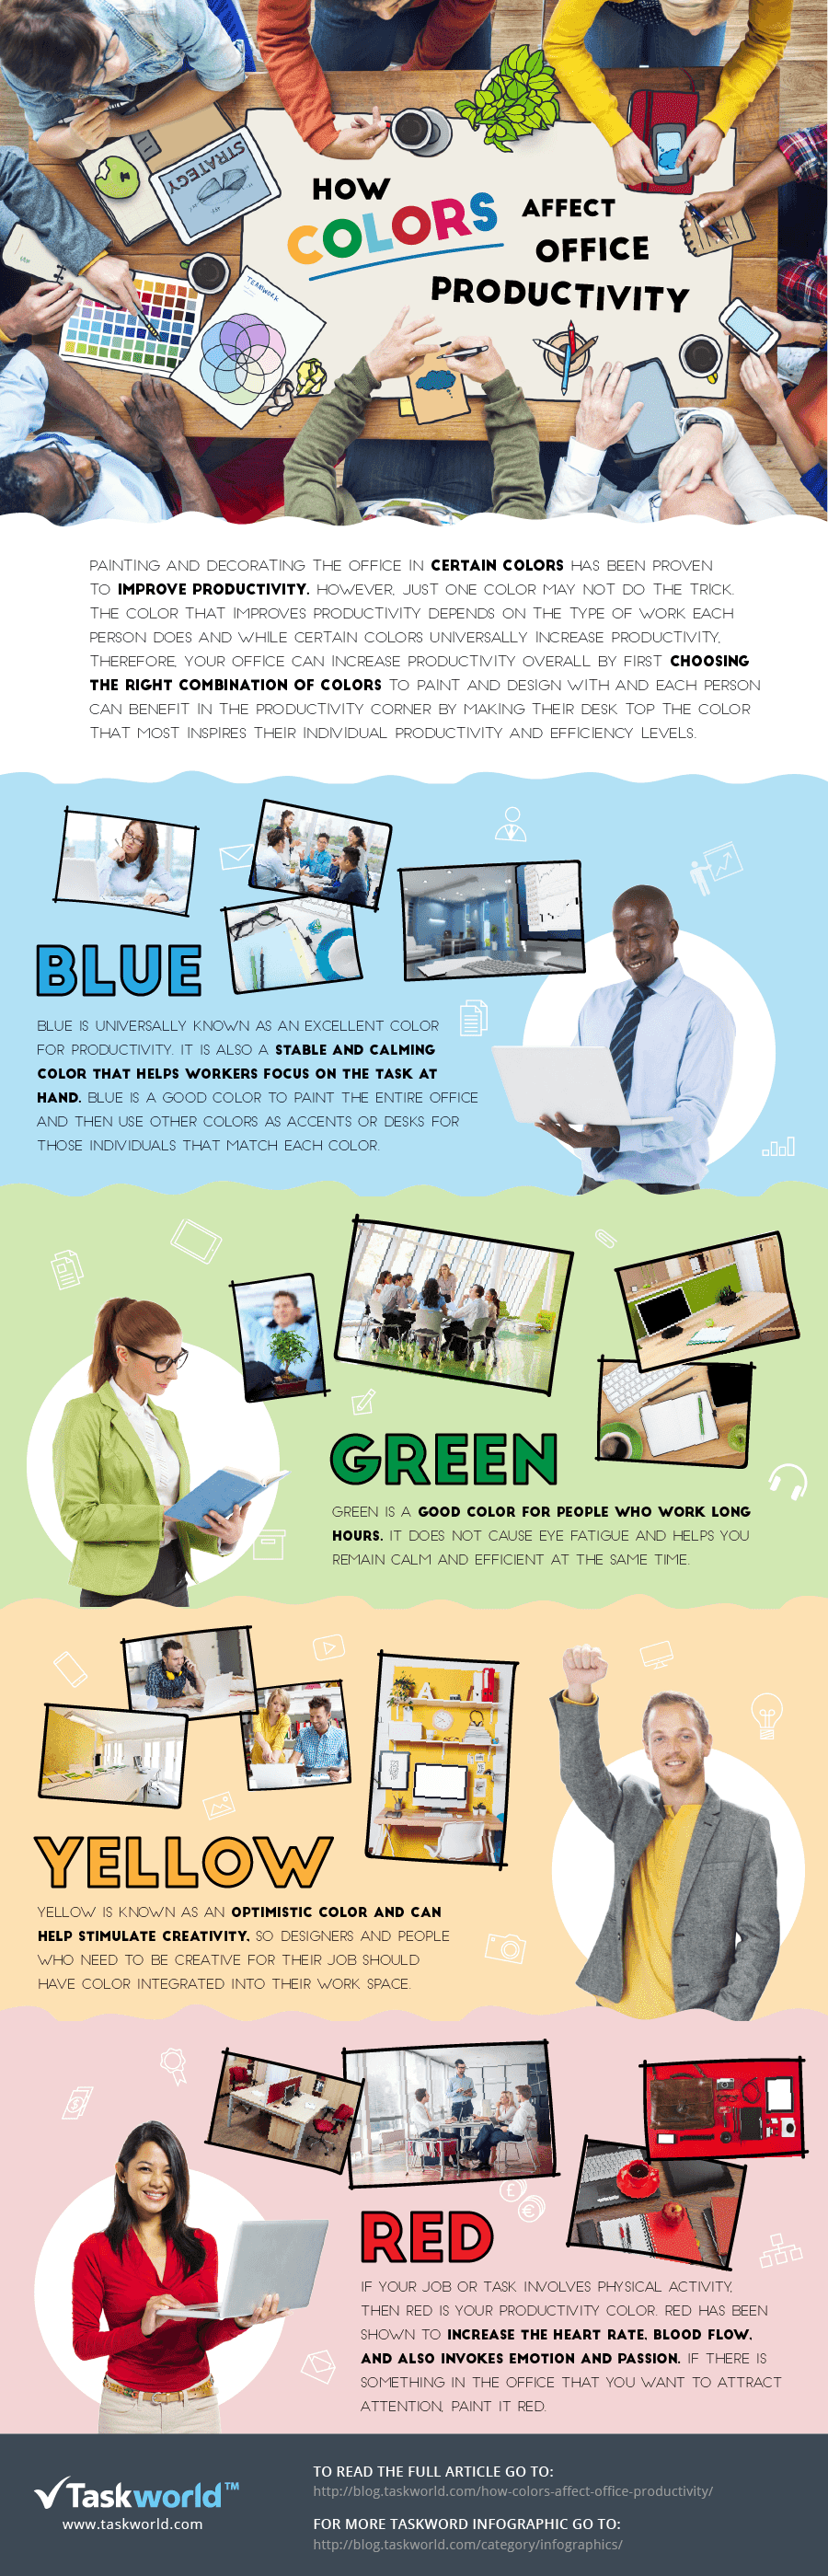 Infographic: How Colors Affect Office Productivity